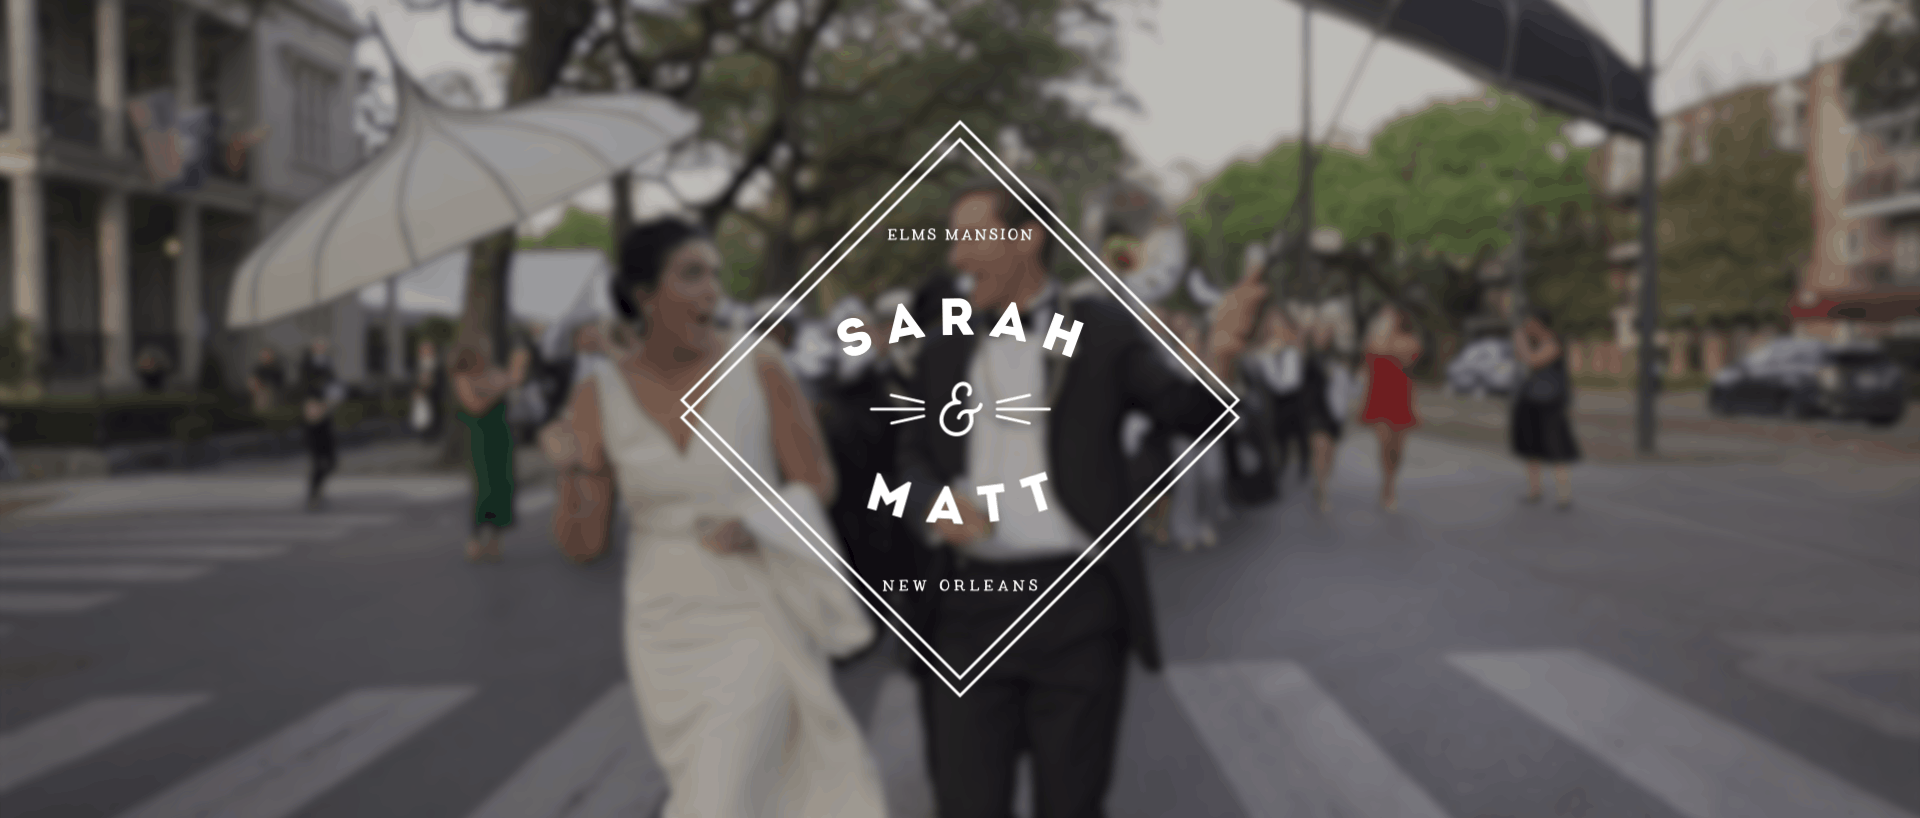 Sarah and Matts New Orleans wedding video